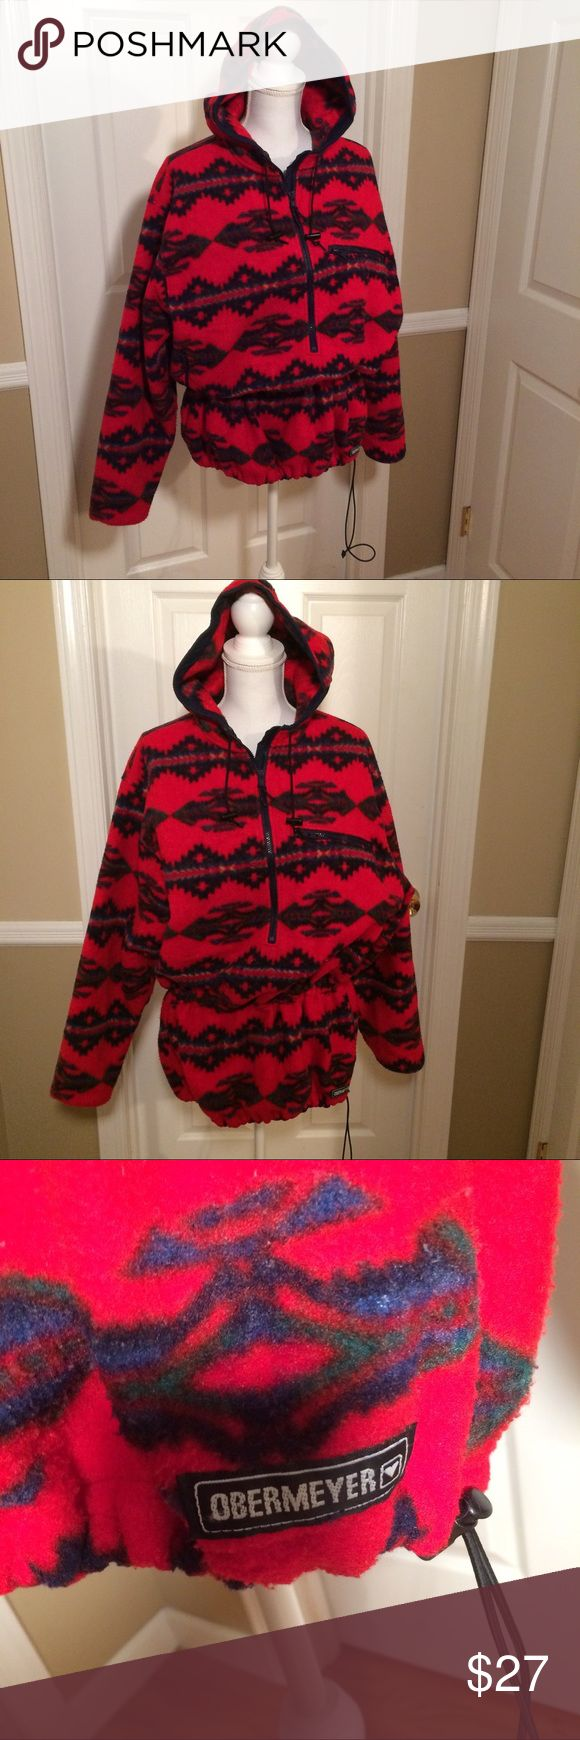 Obermeyer fleece jacket Ladies Obermeyer fleece pullover with hood. Barely worn. Beautiful quality. Red Aztec print. Drawstring drop waist. Deep V Neck Zipper. Zipper breast pocket is side hand pocket. So so comfortable. Used for skiing in Aspen only a few times. Obermeyer Jackets & Coats